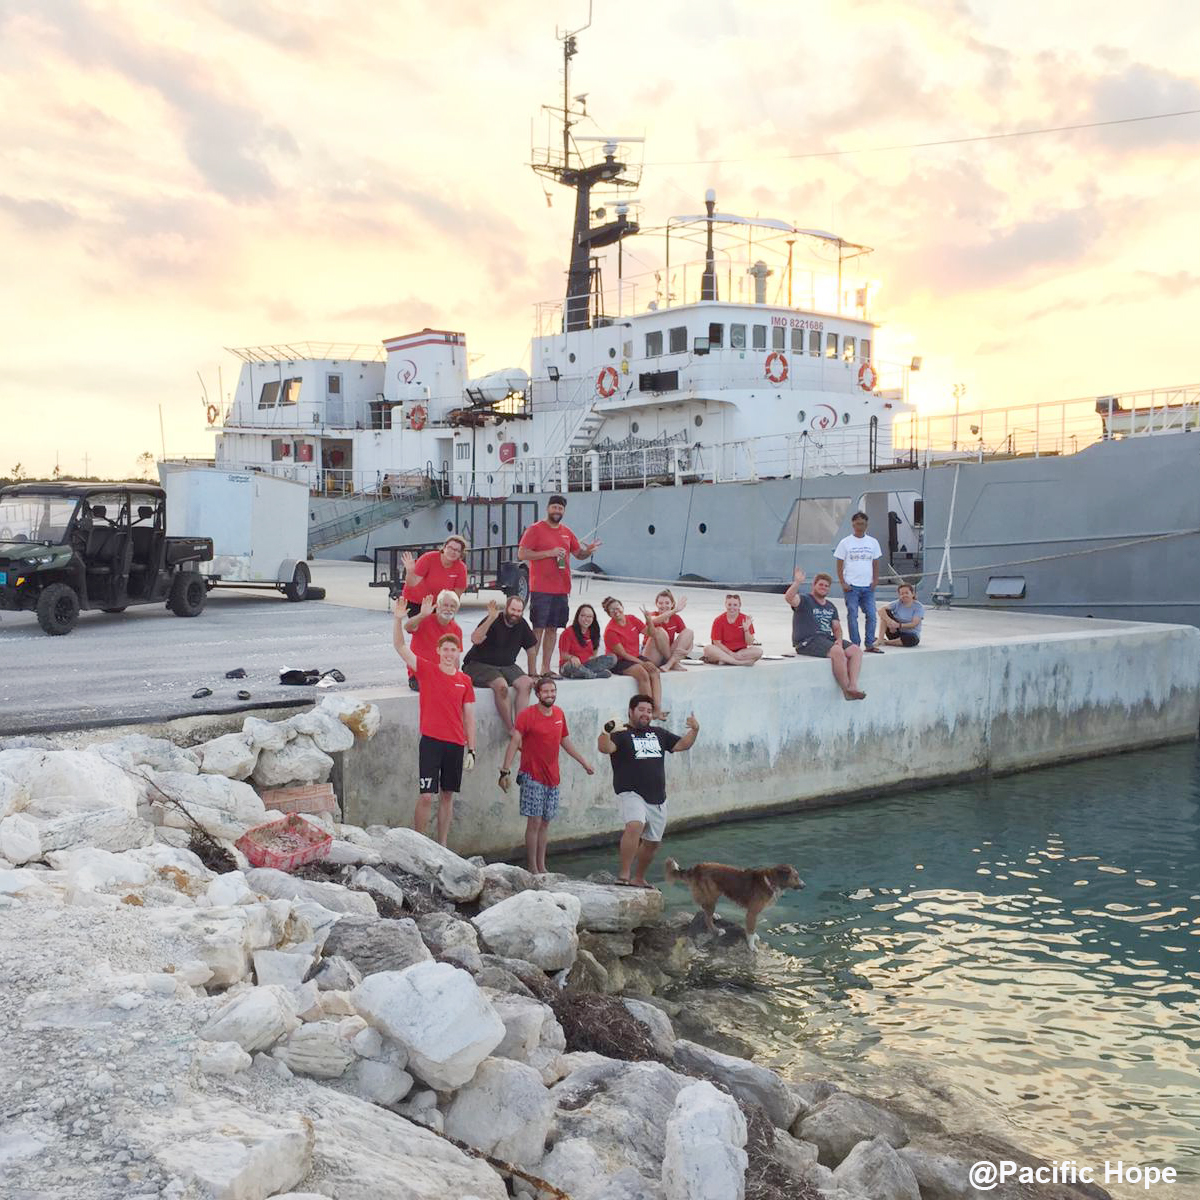 Pacific Hope crew ready to serve the Abaco Islands during COVID-19 crisis